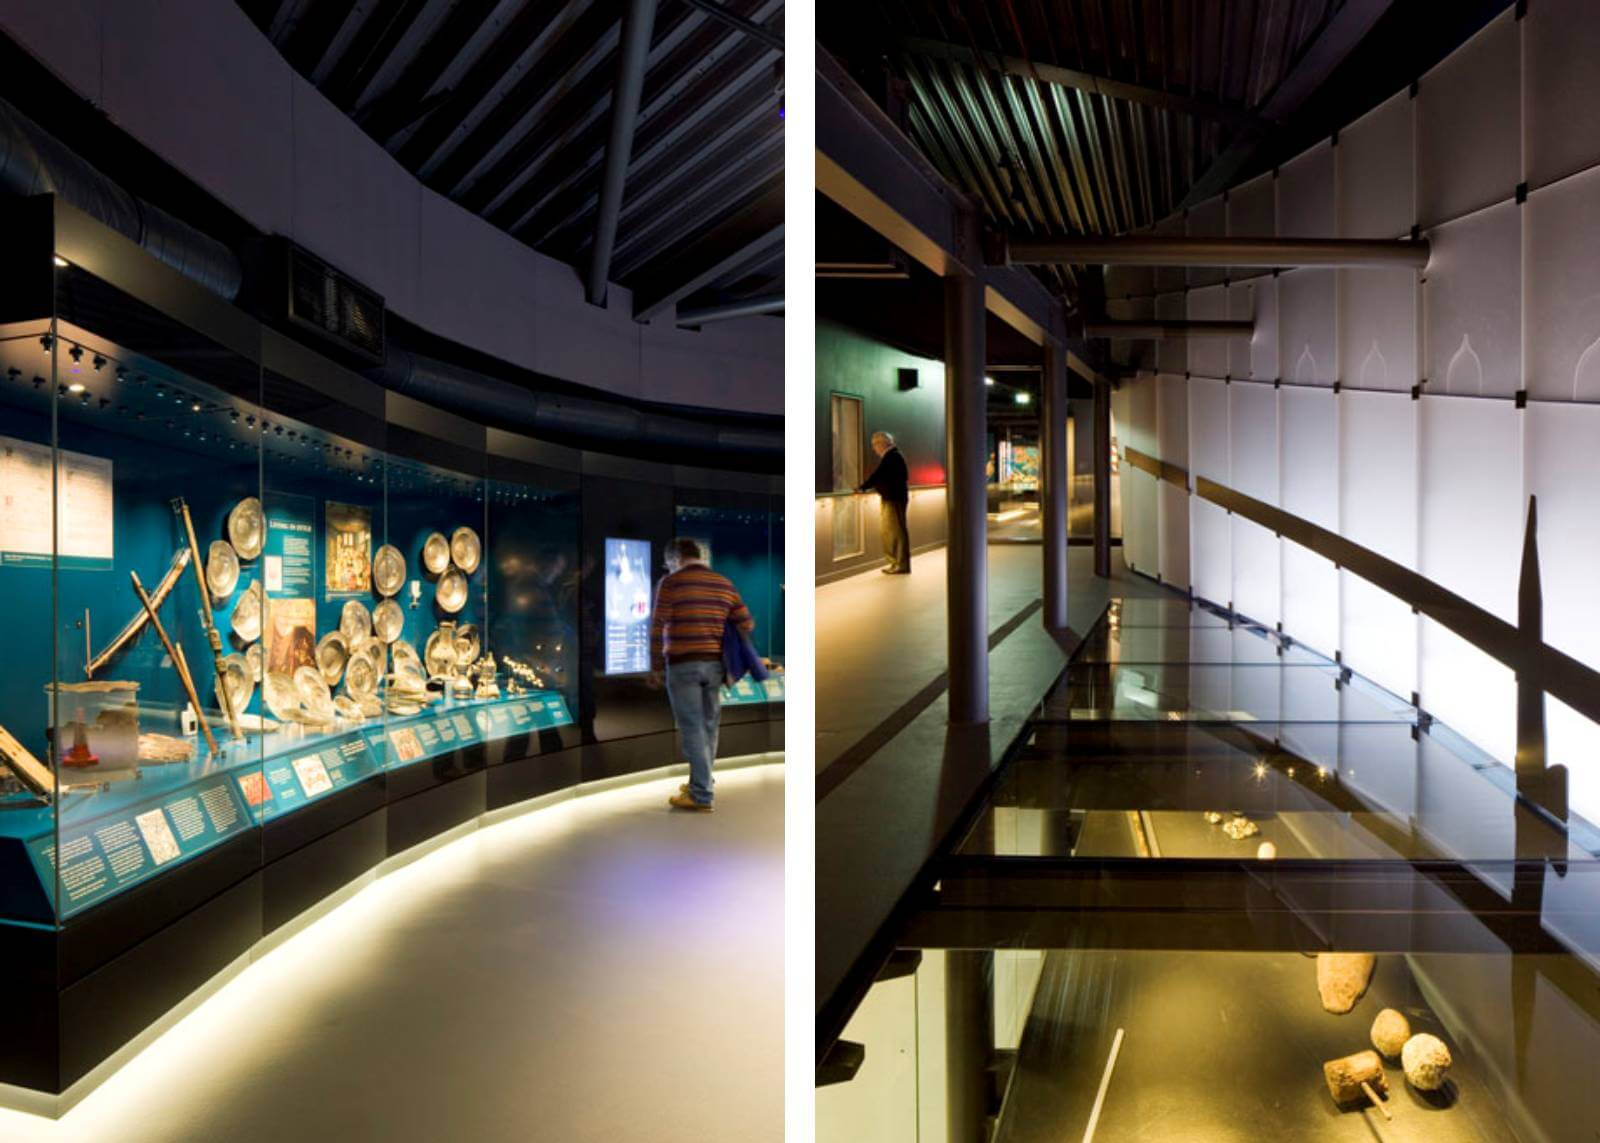 Top 9 Commercial Building Interior Architecture By Uks